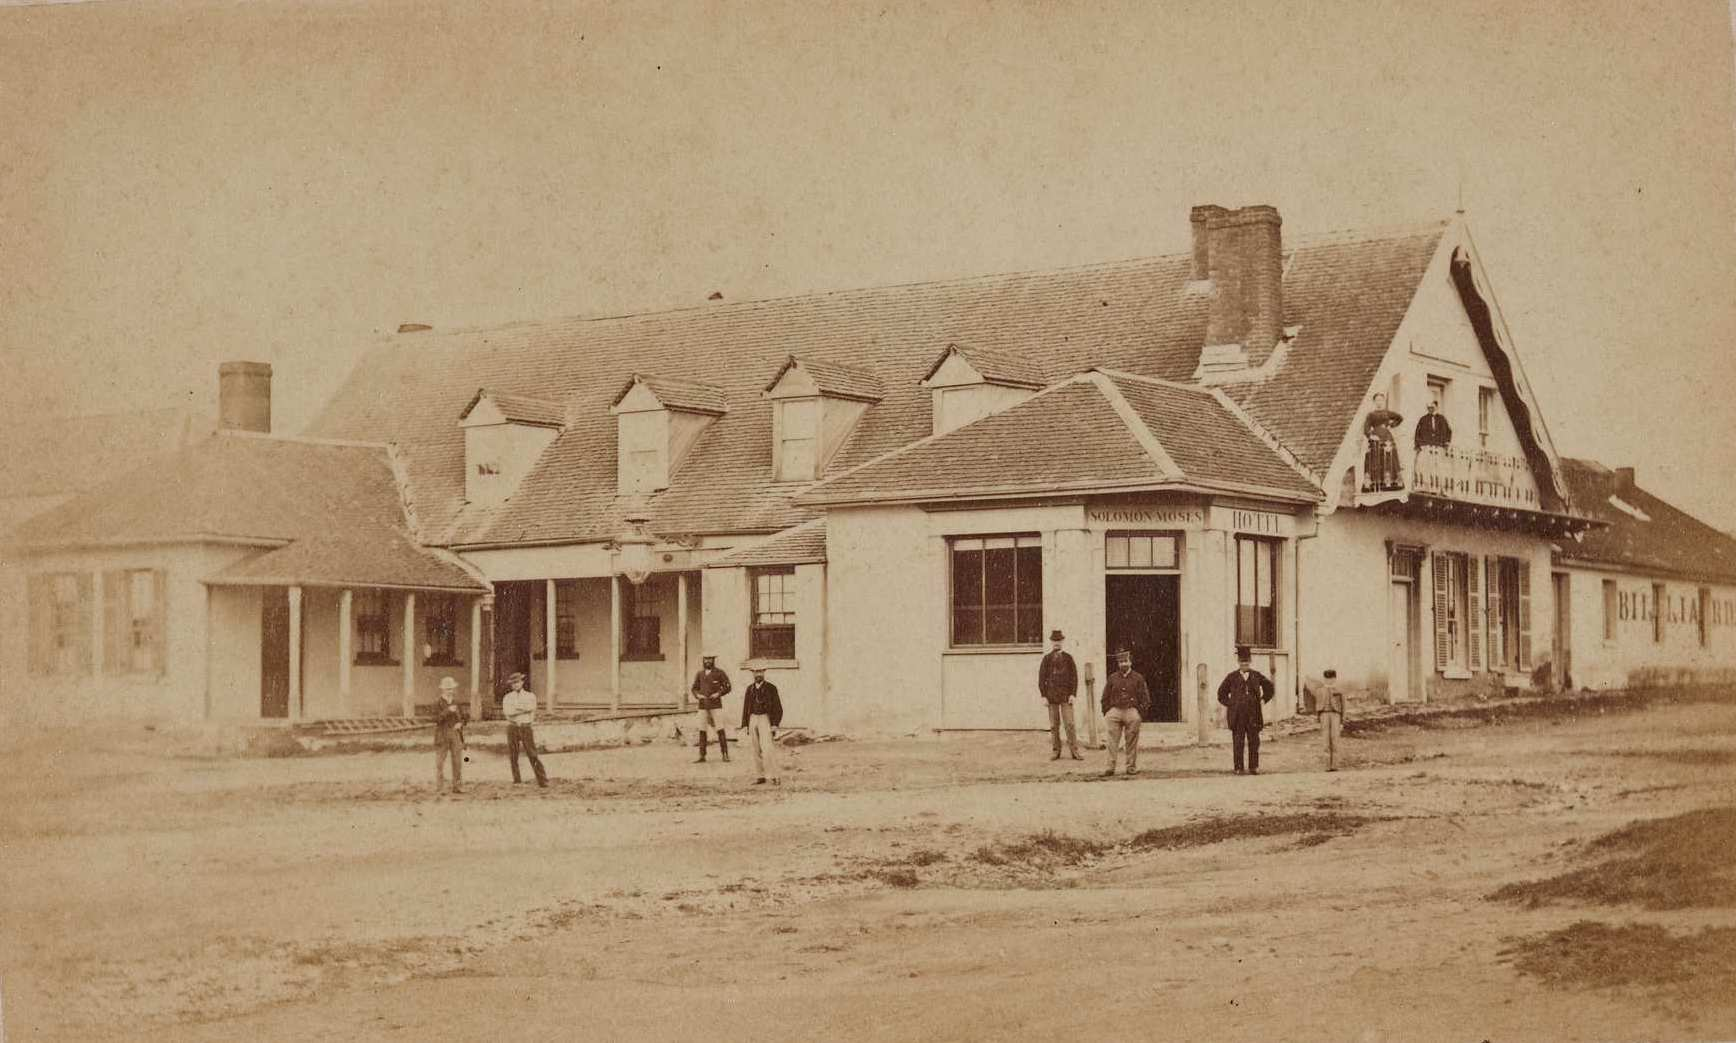 Doncaster Hotel, Braidwood, around April-May 1870 / American and Australasian Photographic Company